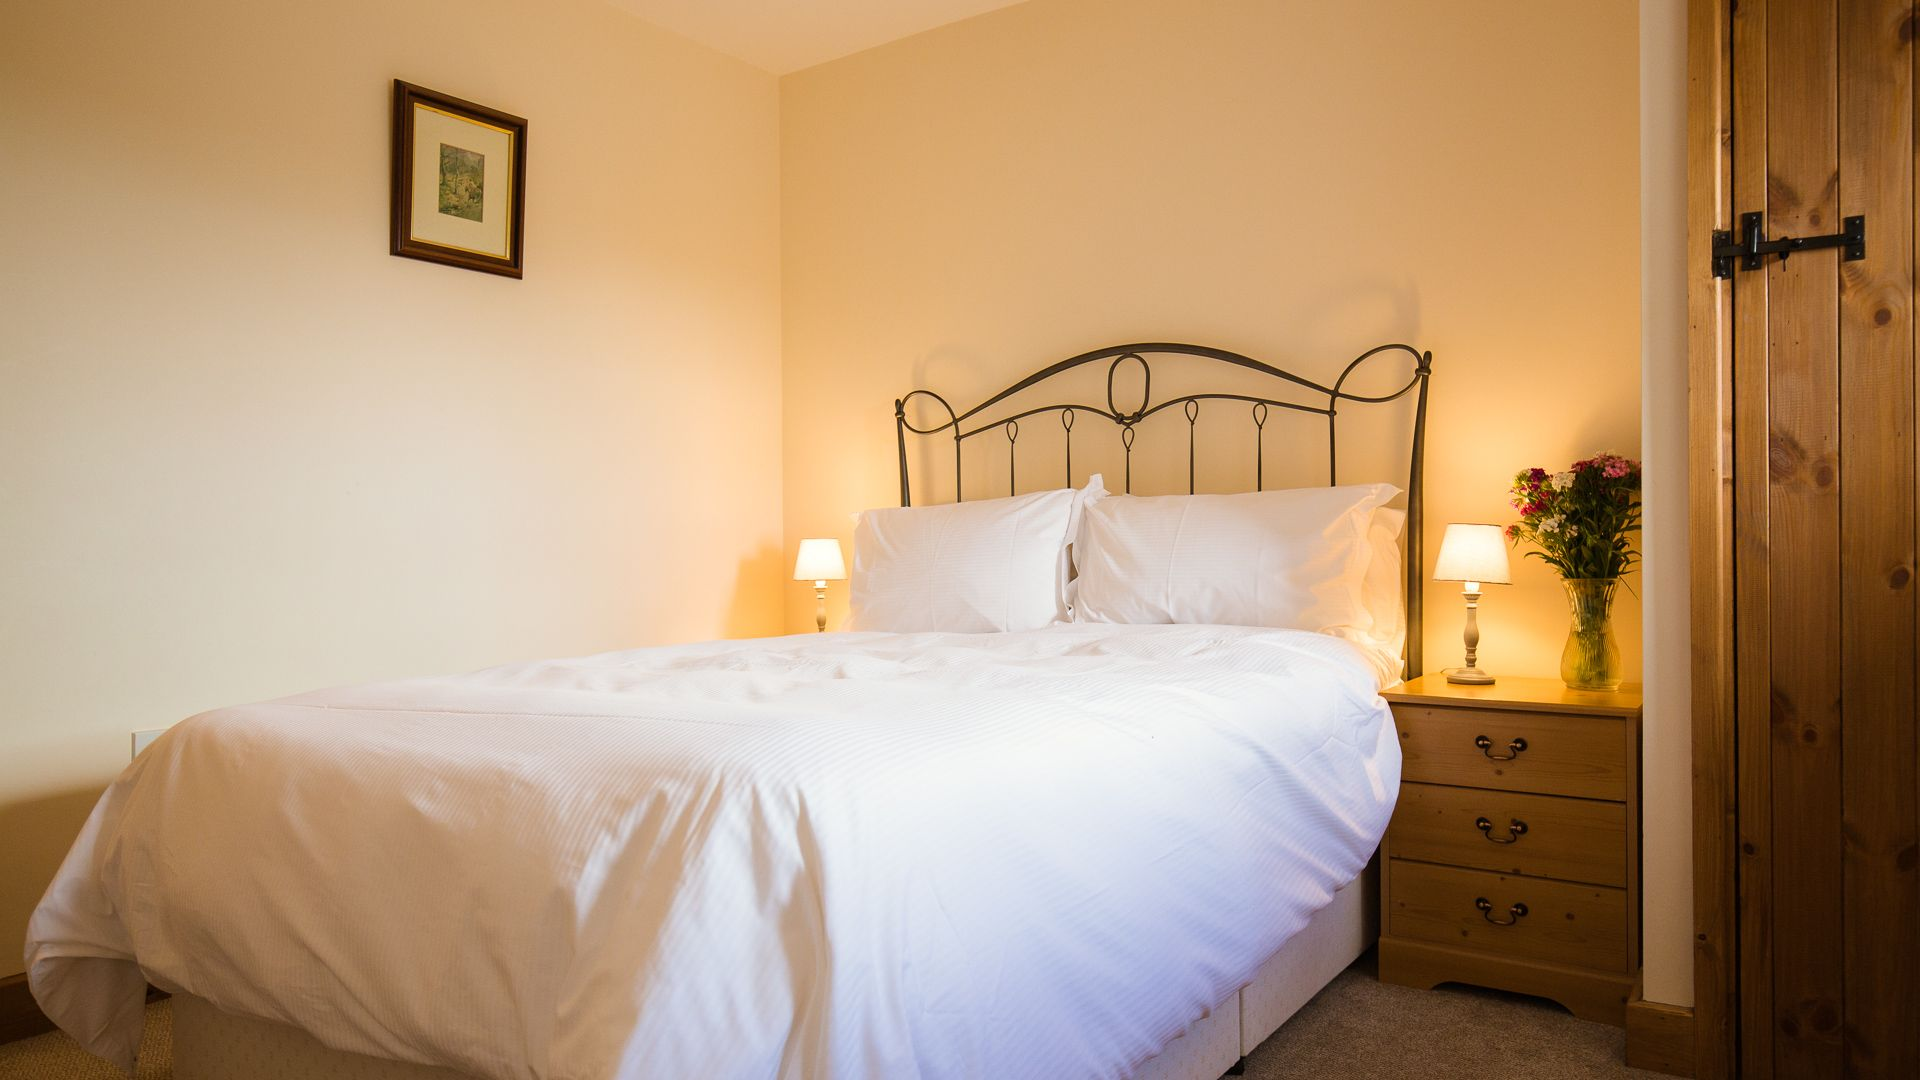 Bedroom One, The Gallery, Bolthole Retreats